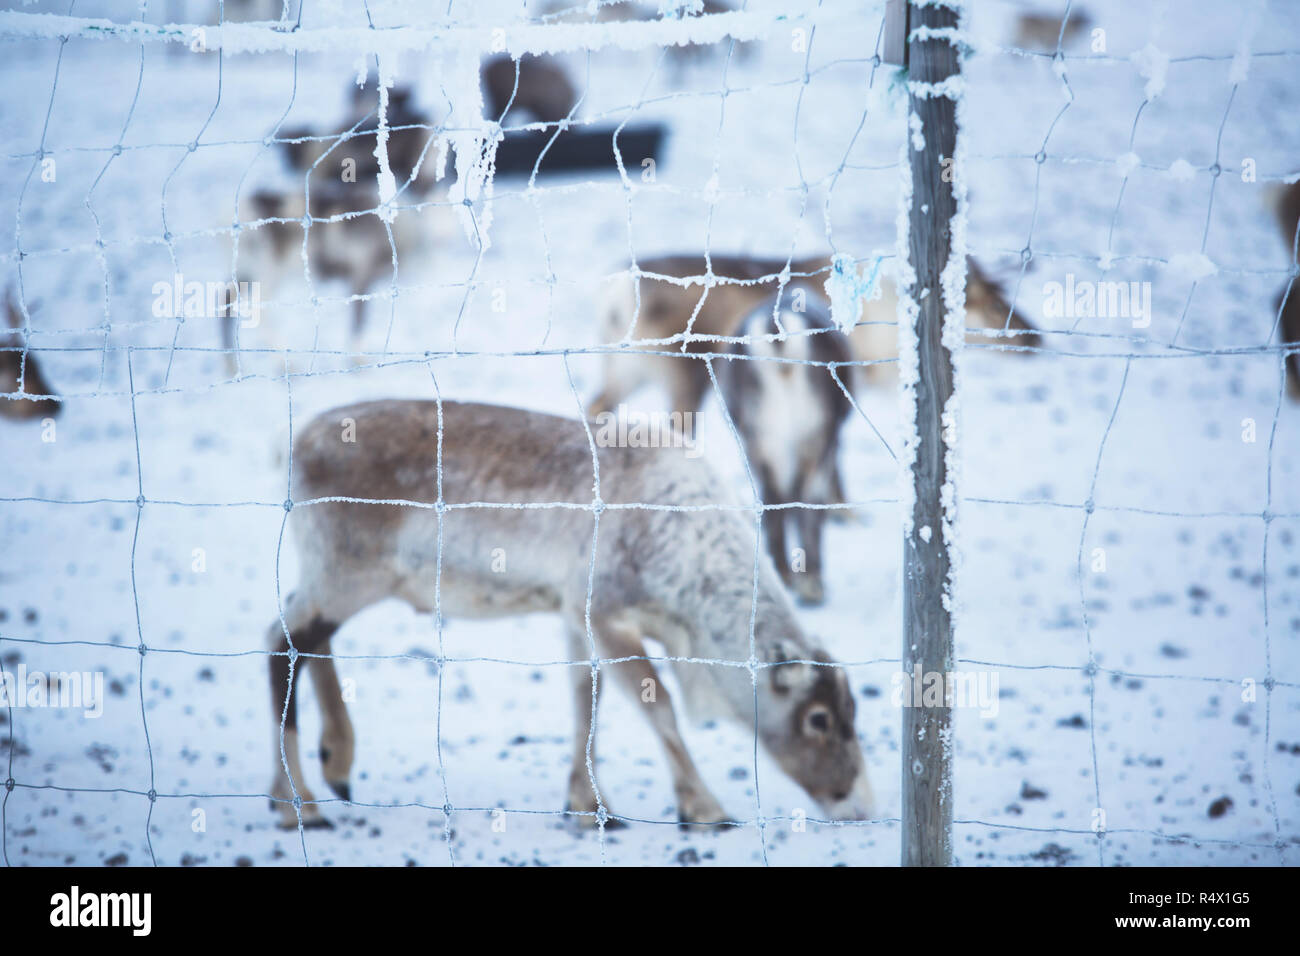 Group herd of caribou reindeers pasturing in snowy landscape, Northern Sweden near Norway border, Lapland - Stock Image